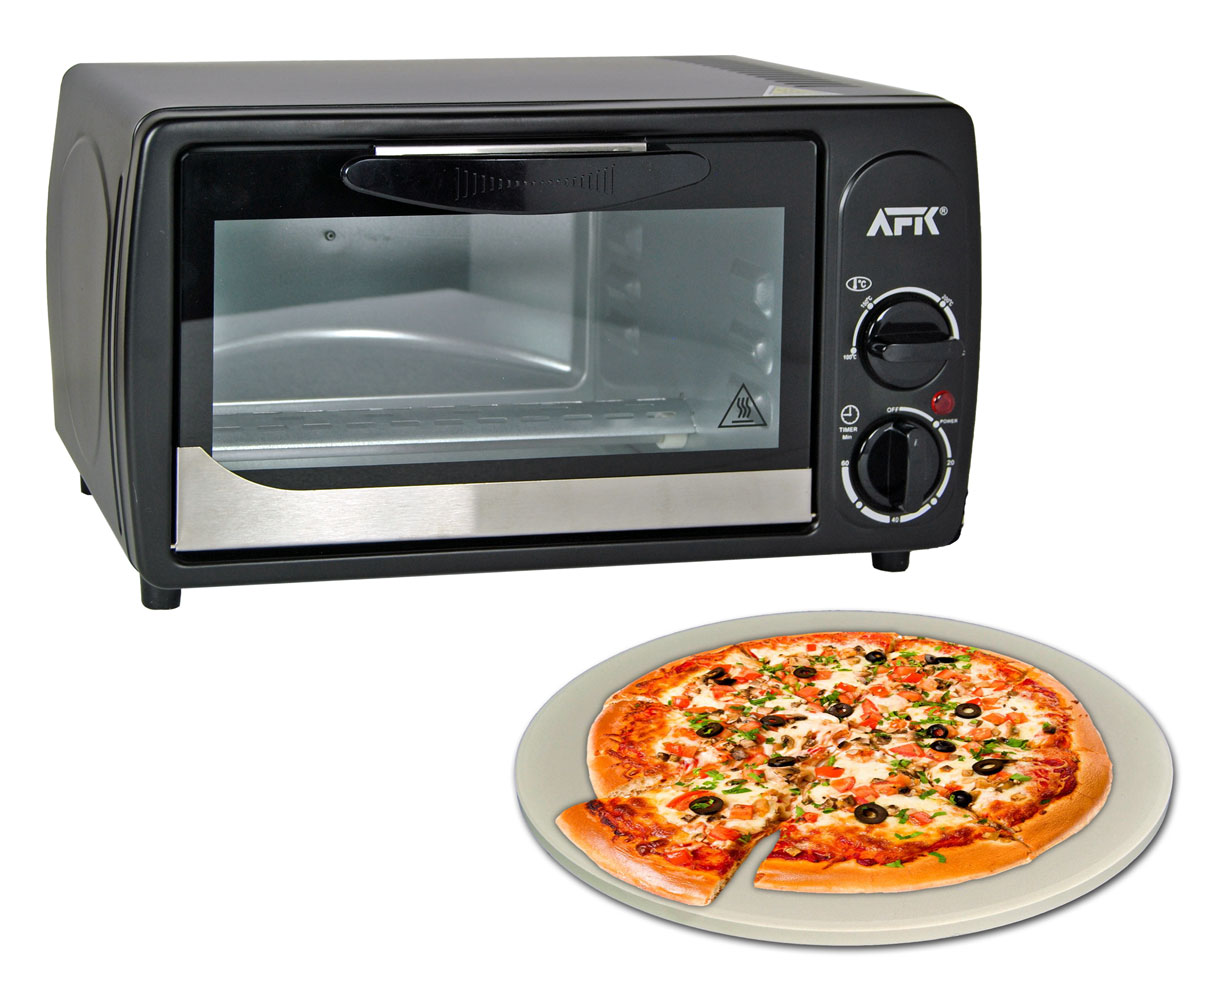 minibackofen 12l pizzastein timer pizzaofen ofen ober und unterhitze backofen ebay. Black Bedroom Furniture Sets. Home Design Ideas